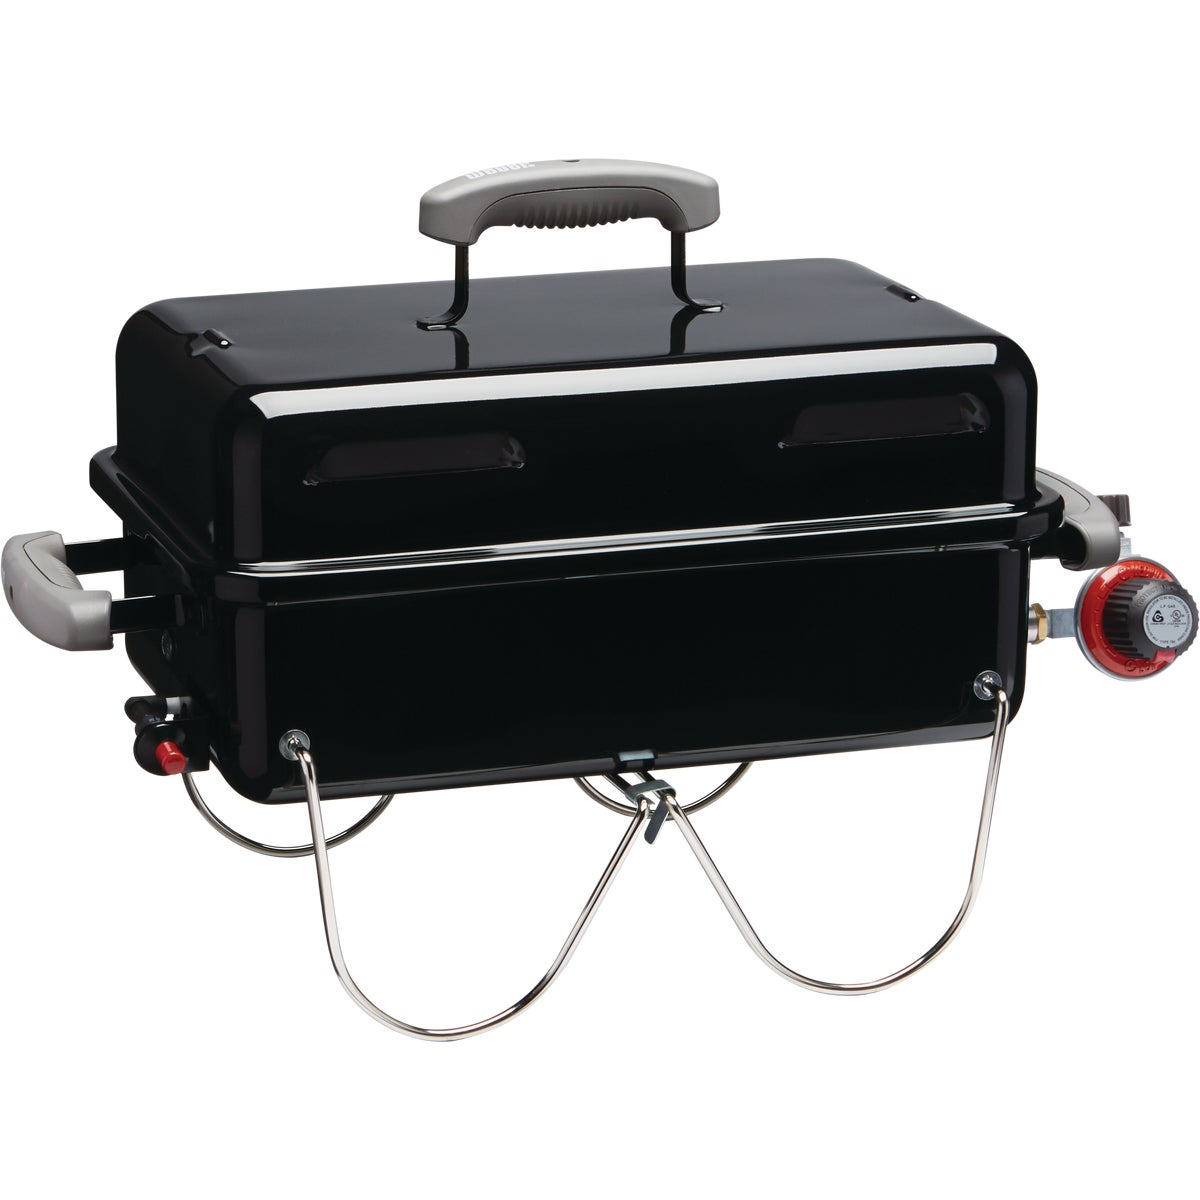 GO ANYWHERE GAS GRILL - 1141001 by Weber